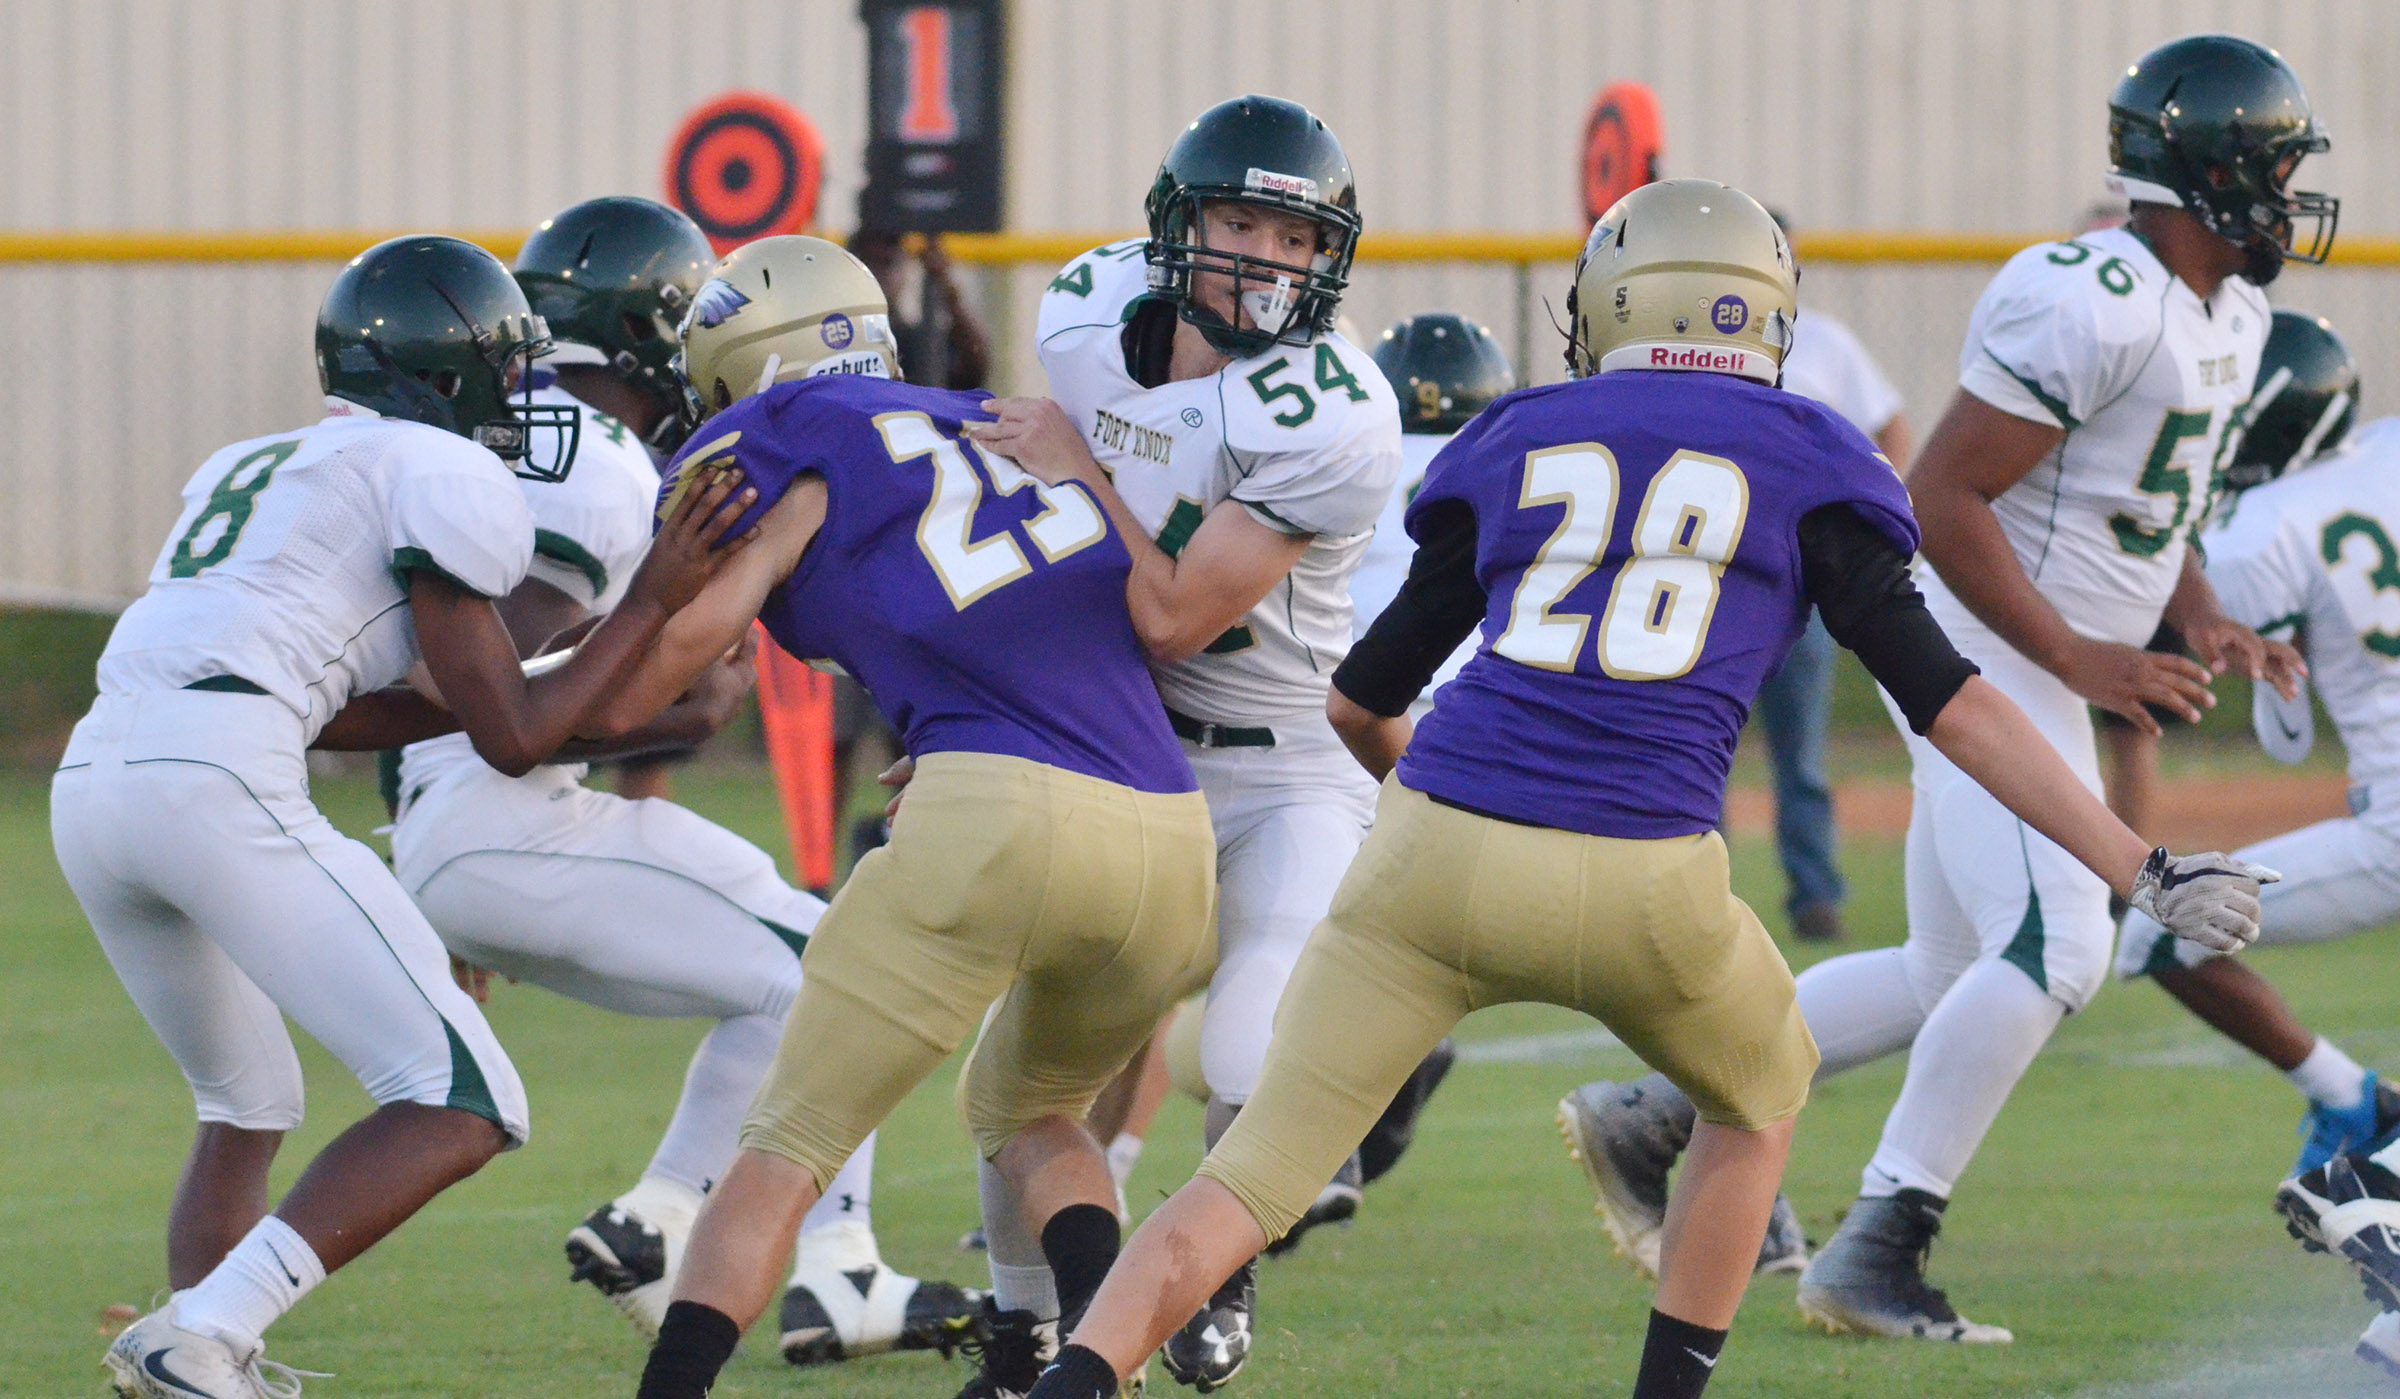 CHS junior Tristan Johnson, at left, and sophomore Blake Allen tackle.